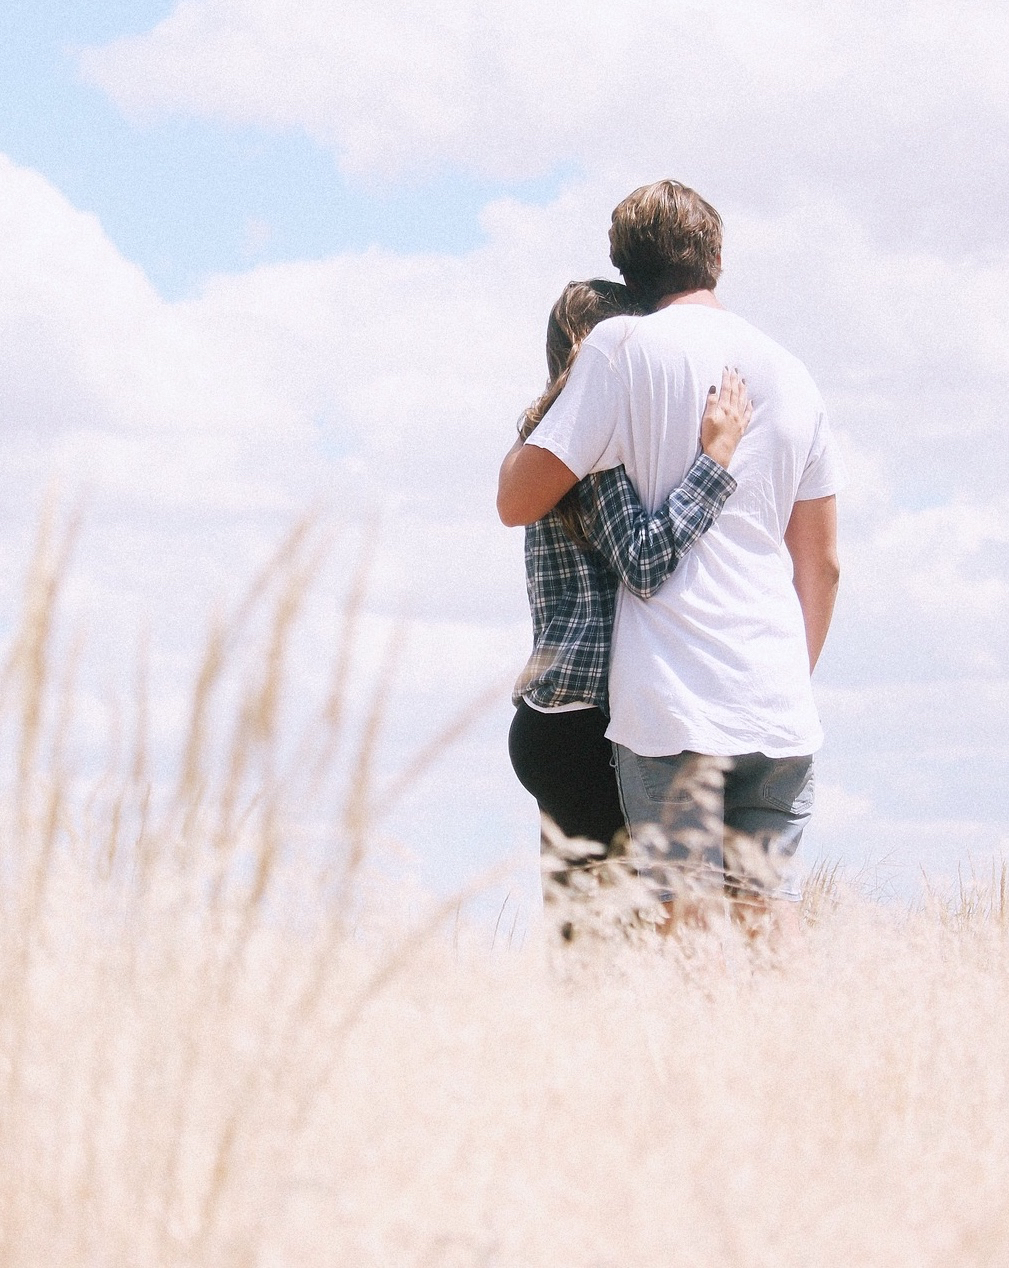 How often is normal in a relationship?